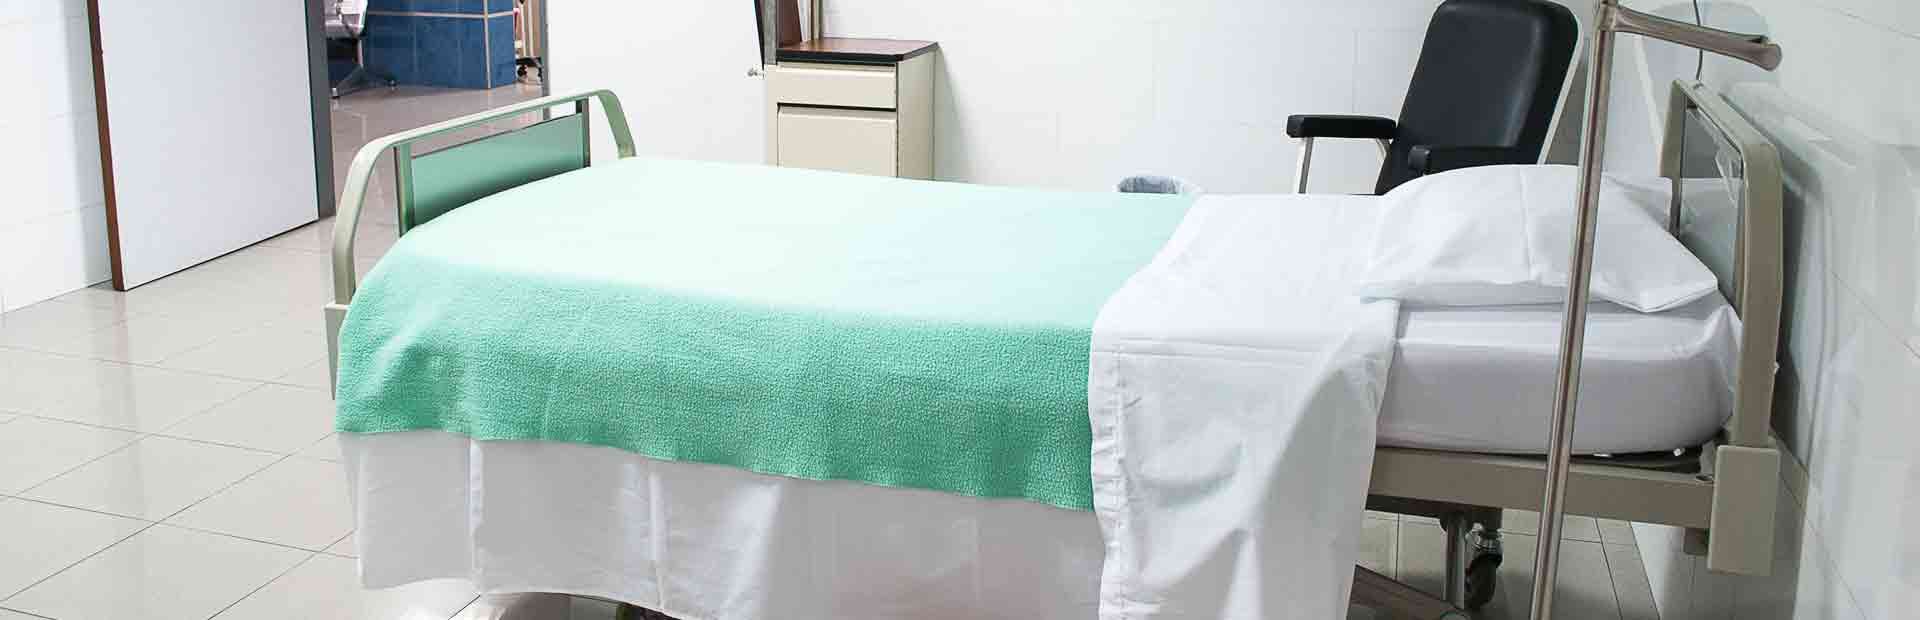 A hospital bed with a green blanket